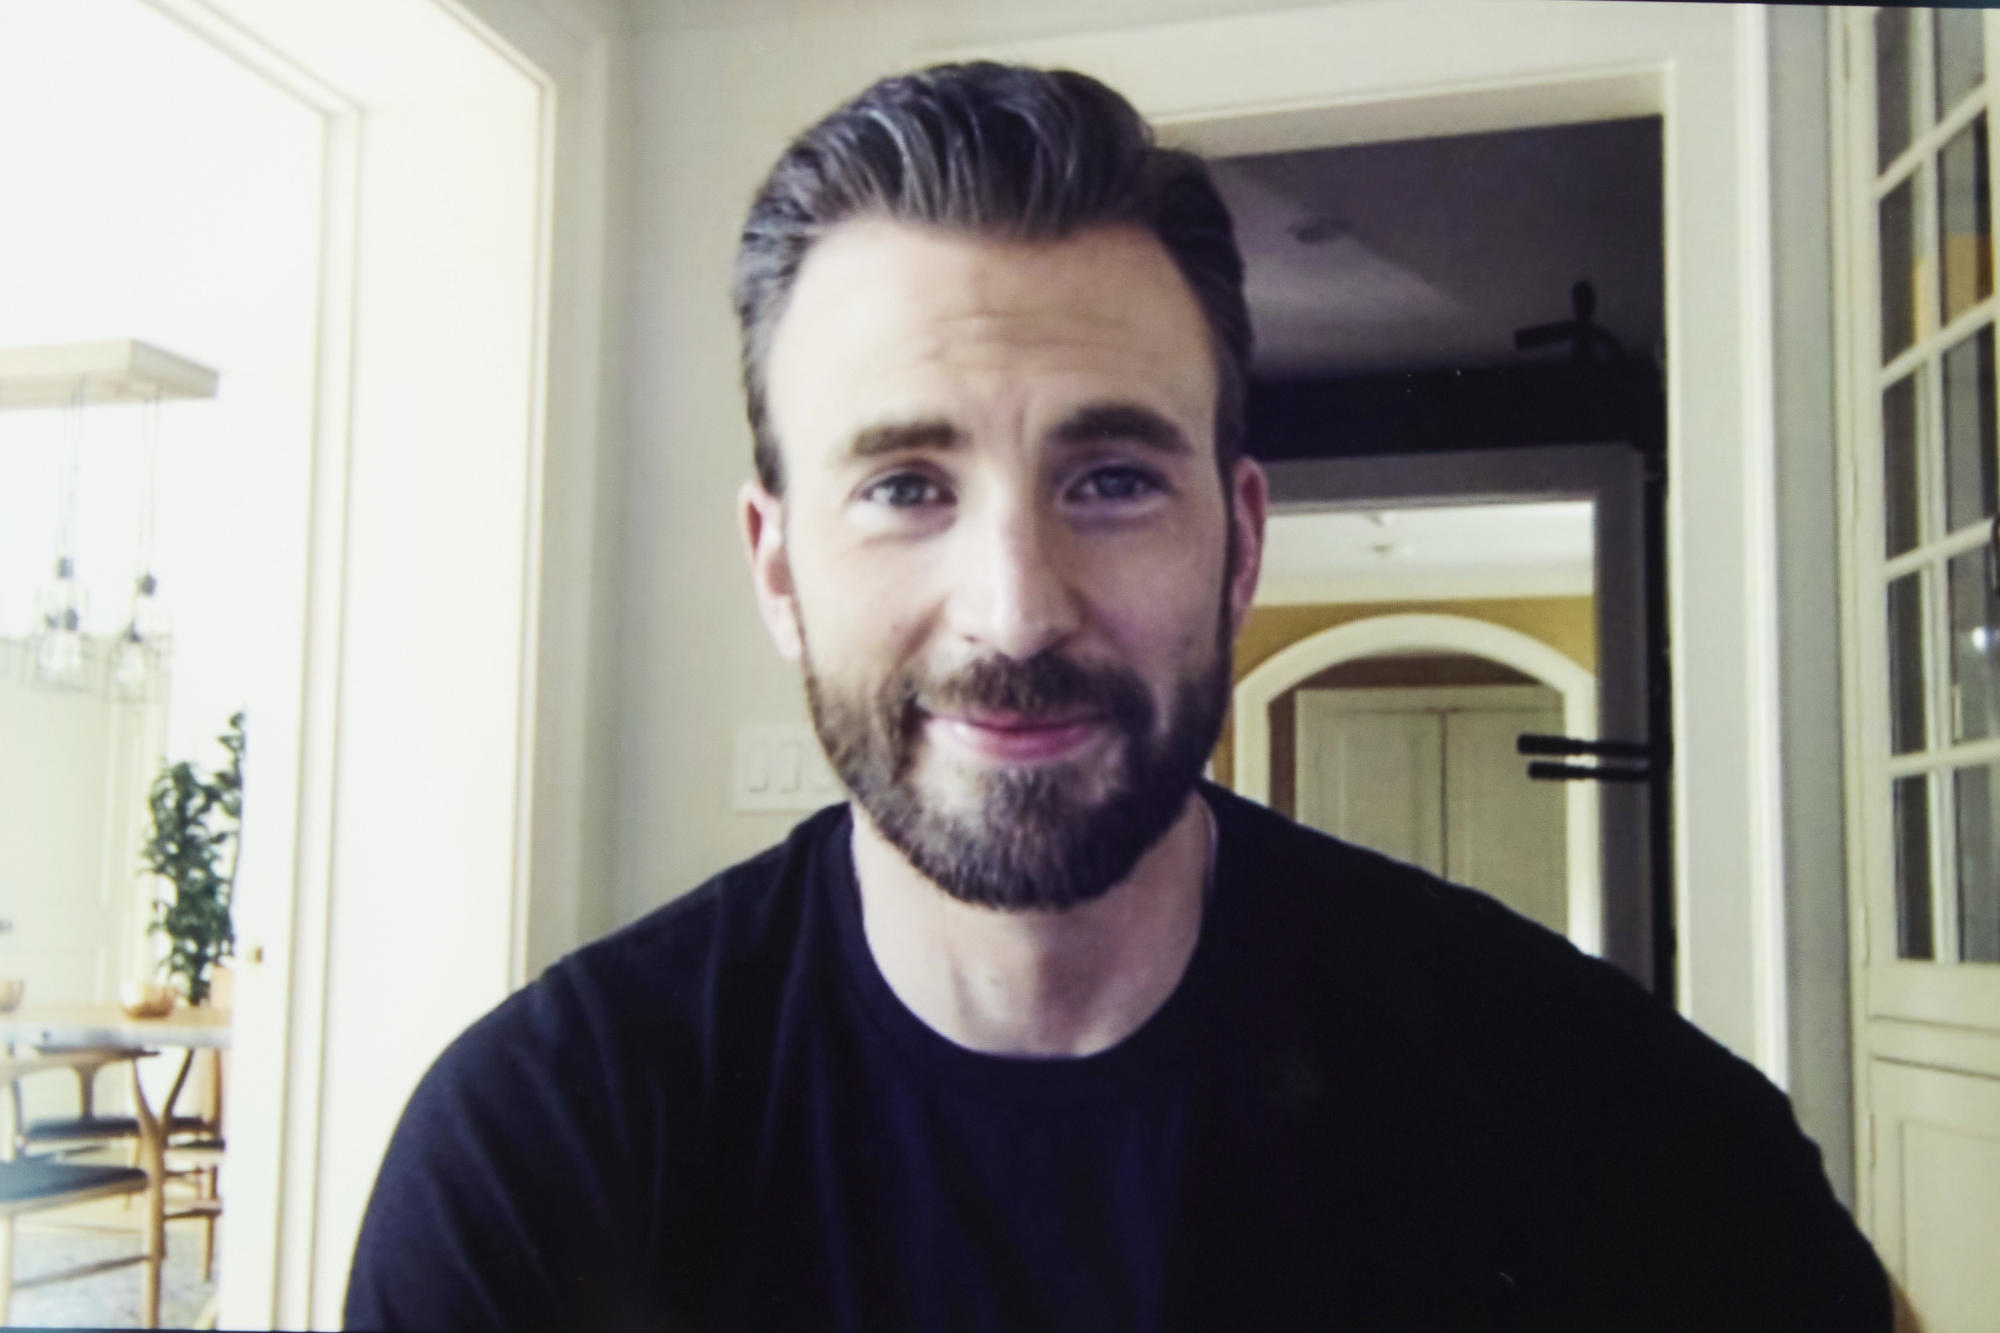 Chris Evans cashes in on nude leak attention, urge